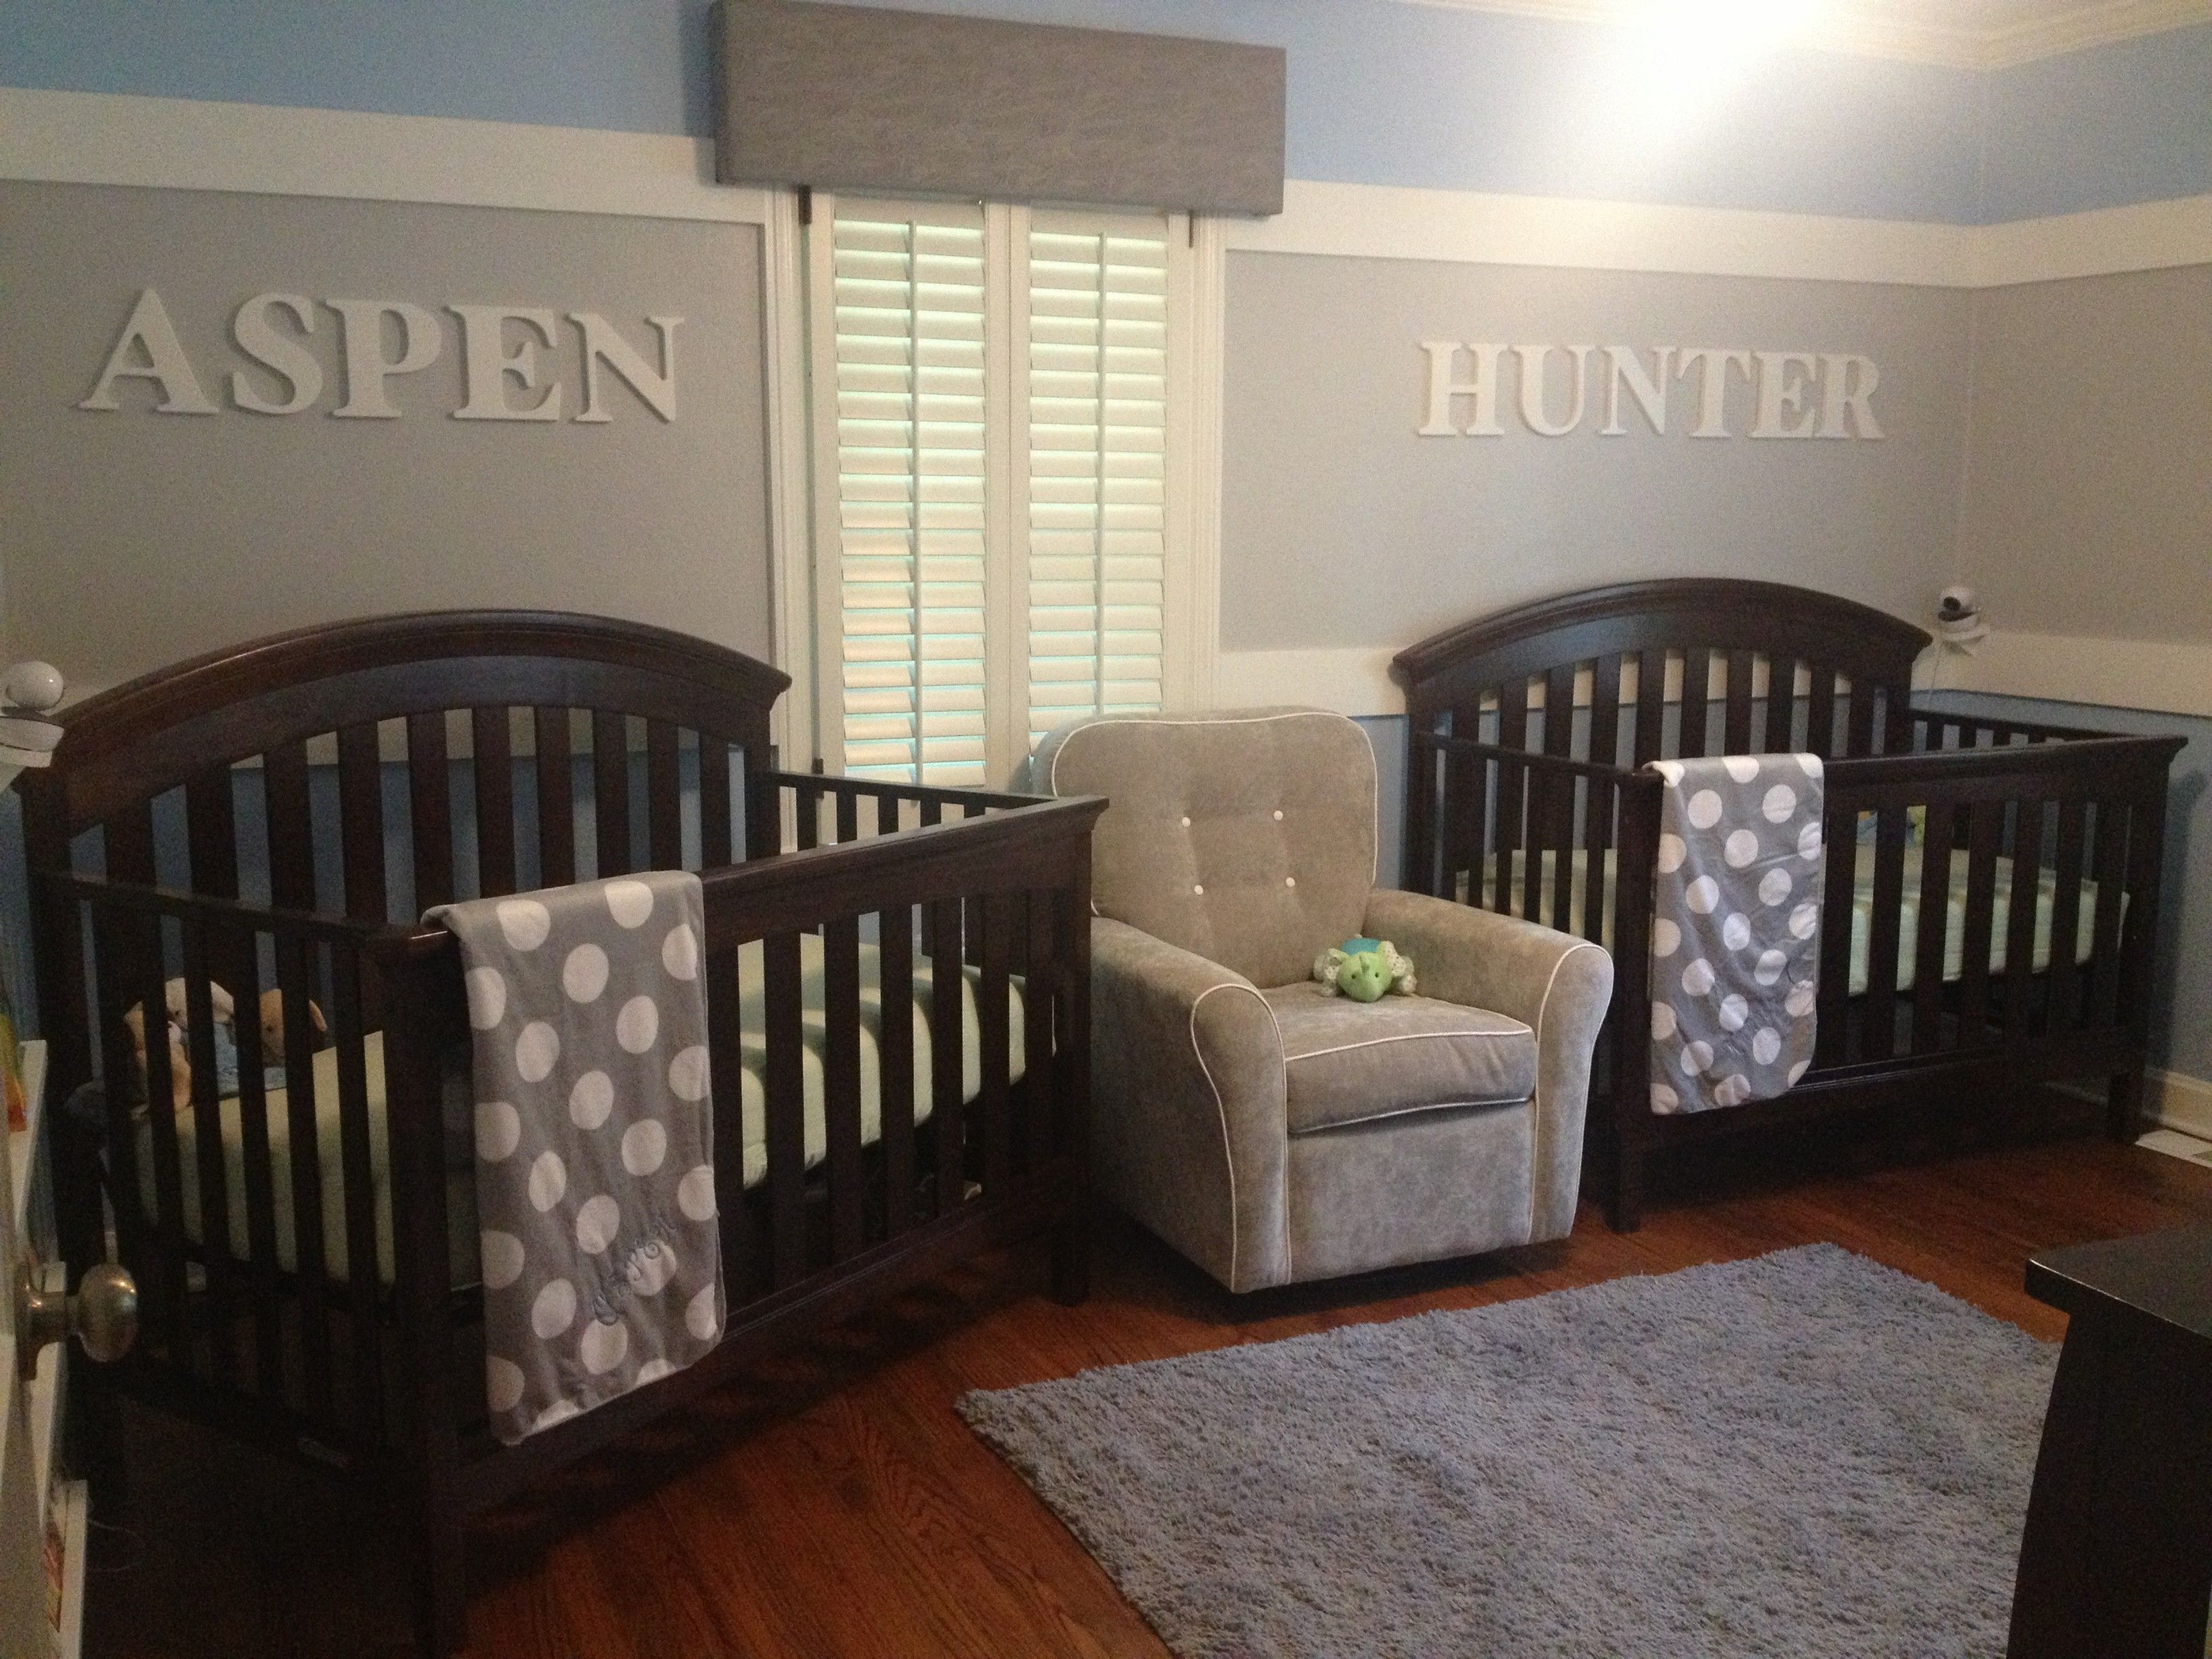 Bedroom Nursery Decor Online Blue Nursery Ideas Decor Baby Nursery Boy Ideas  Baby Boy Nursery Inspiration Boy Nursery Ideas With Cool And Masculine  Concept